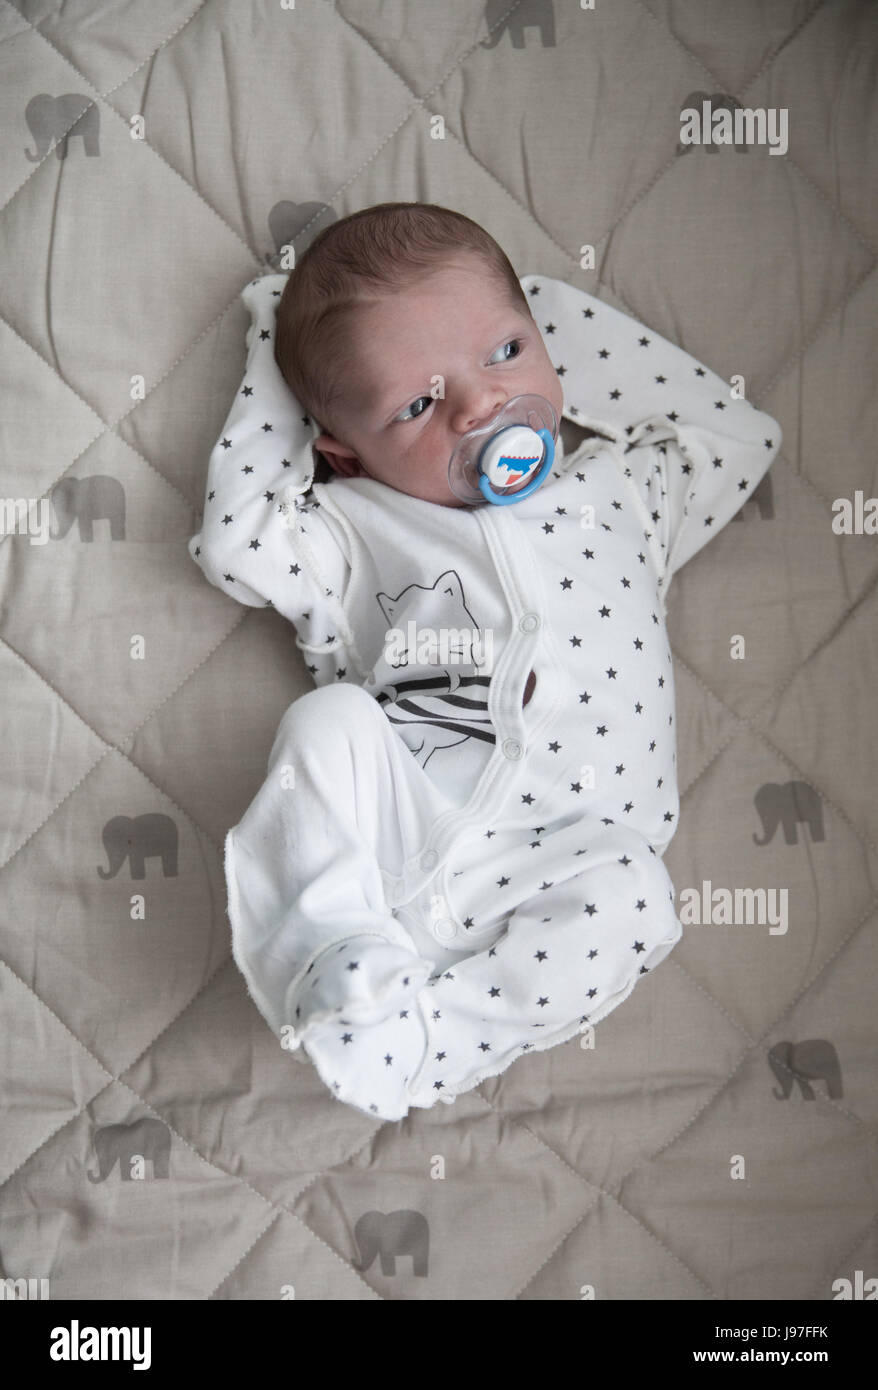 Pensive new born baby boy is laying in white sleepers with blue nipple and watching int the window - Stock Image